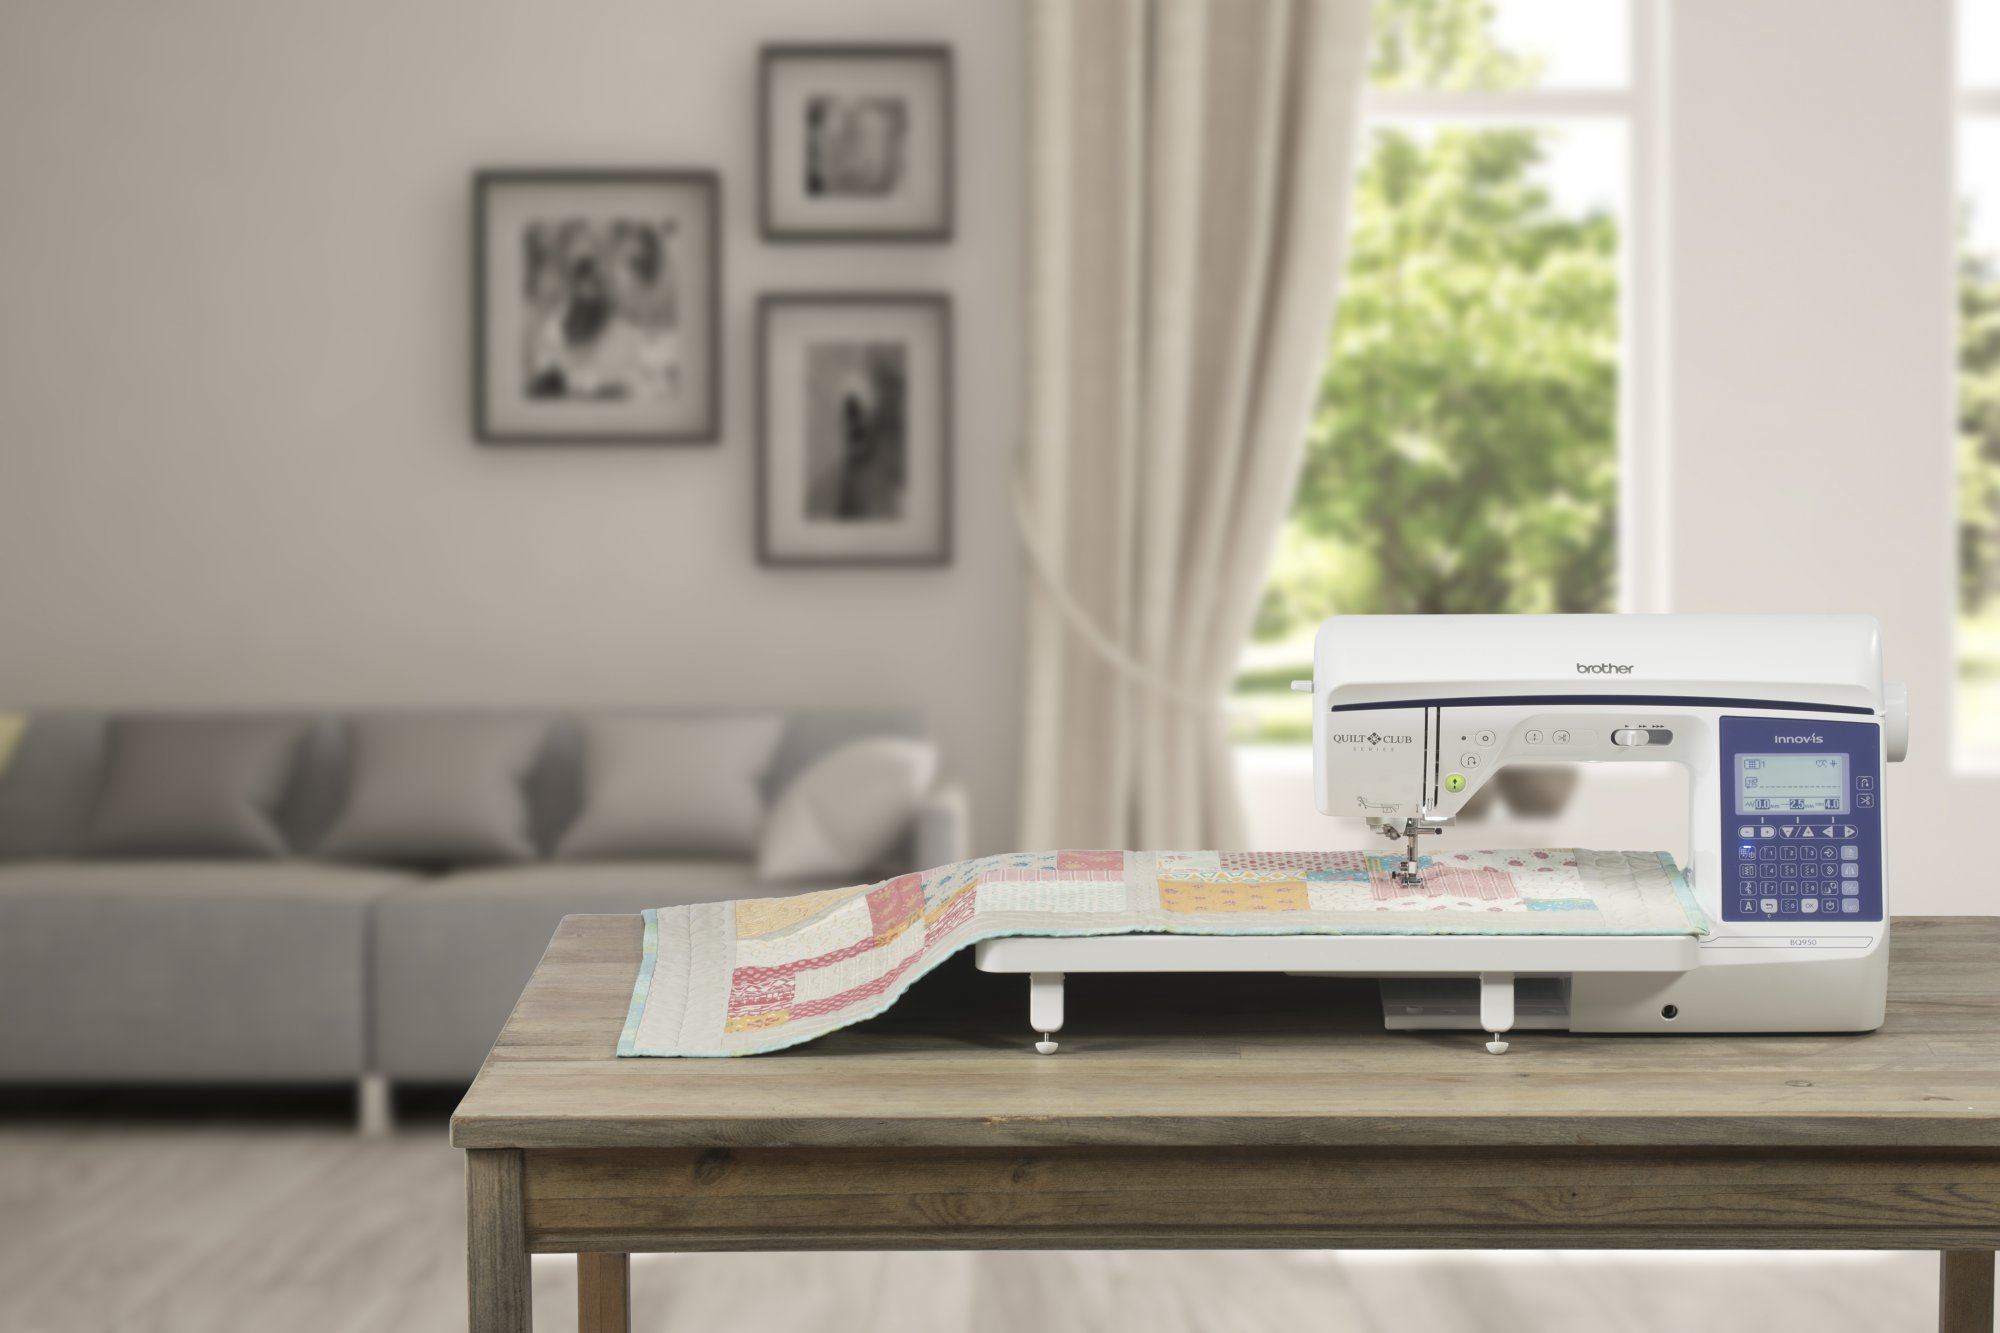 Brother Innov-is BQ950 Sewing Machine